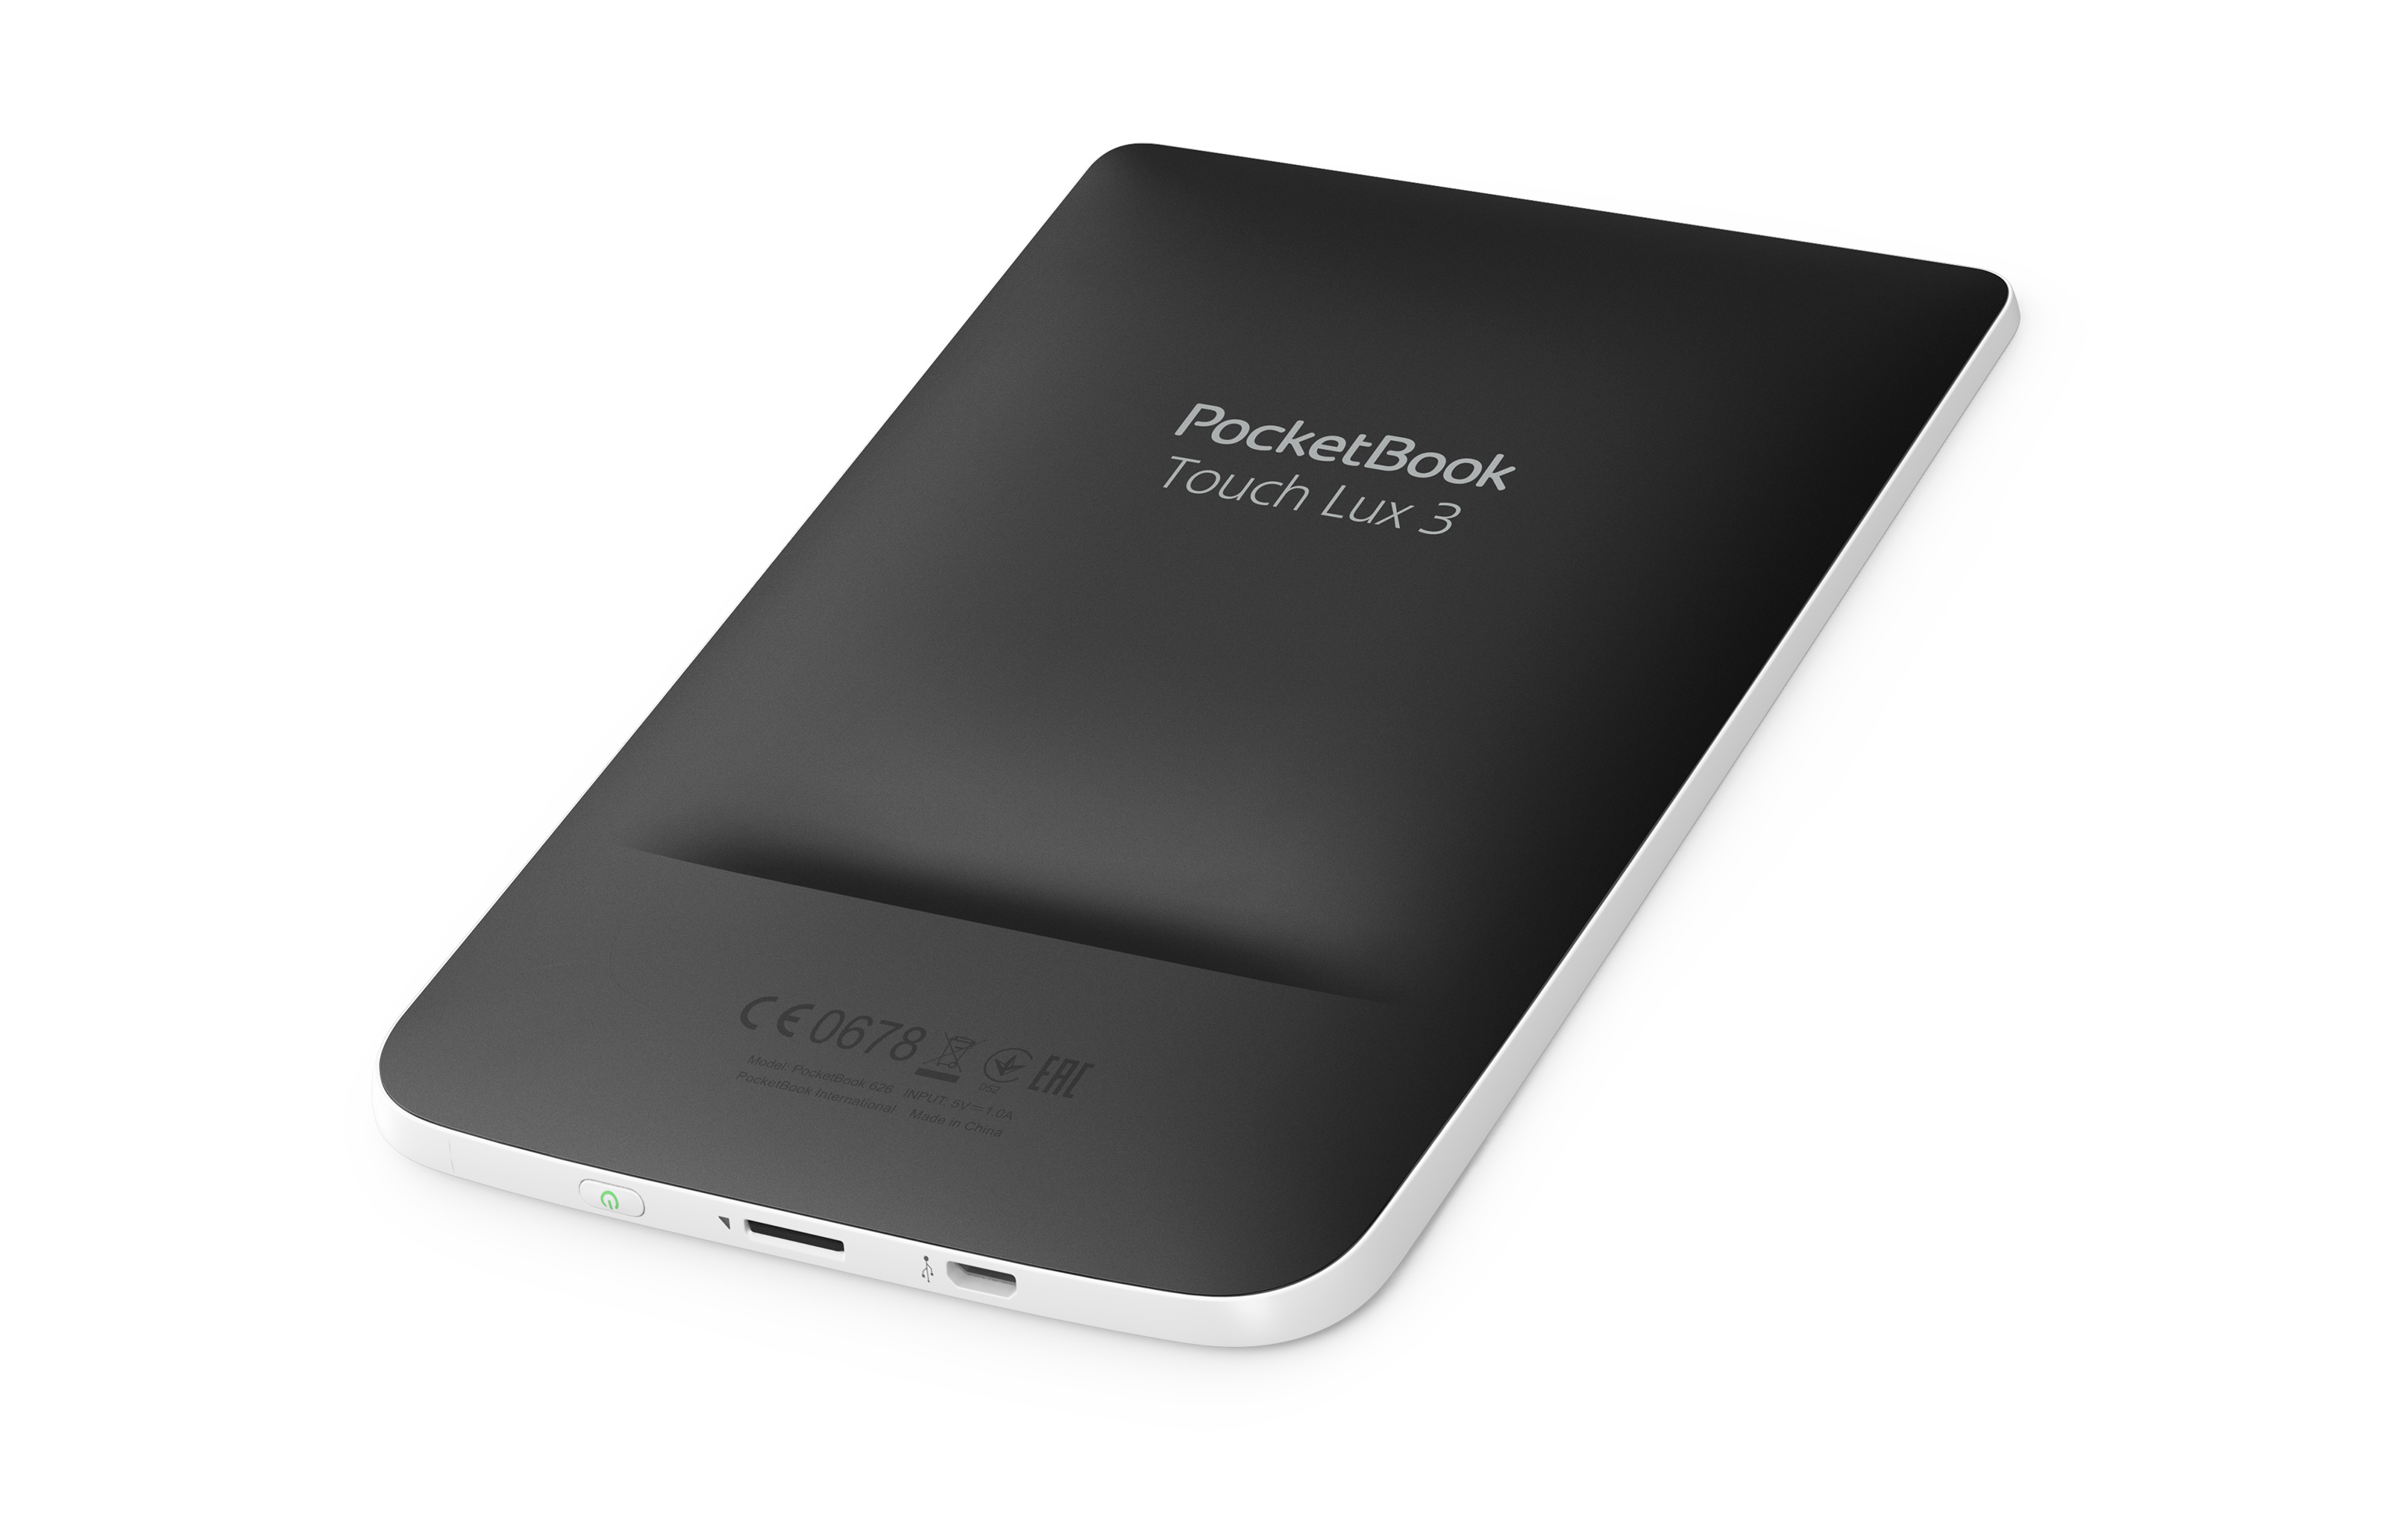 Reading with PocketBook Touch Lux 3